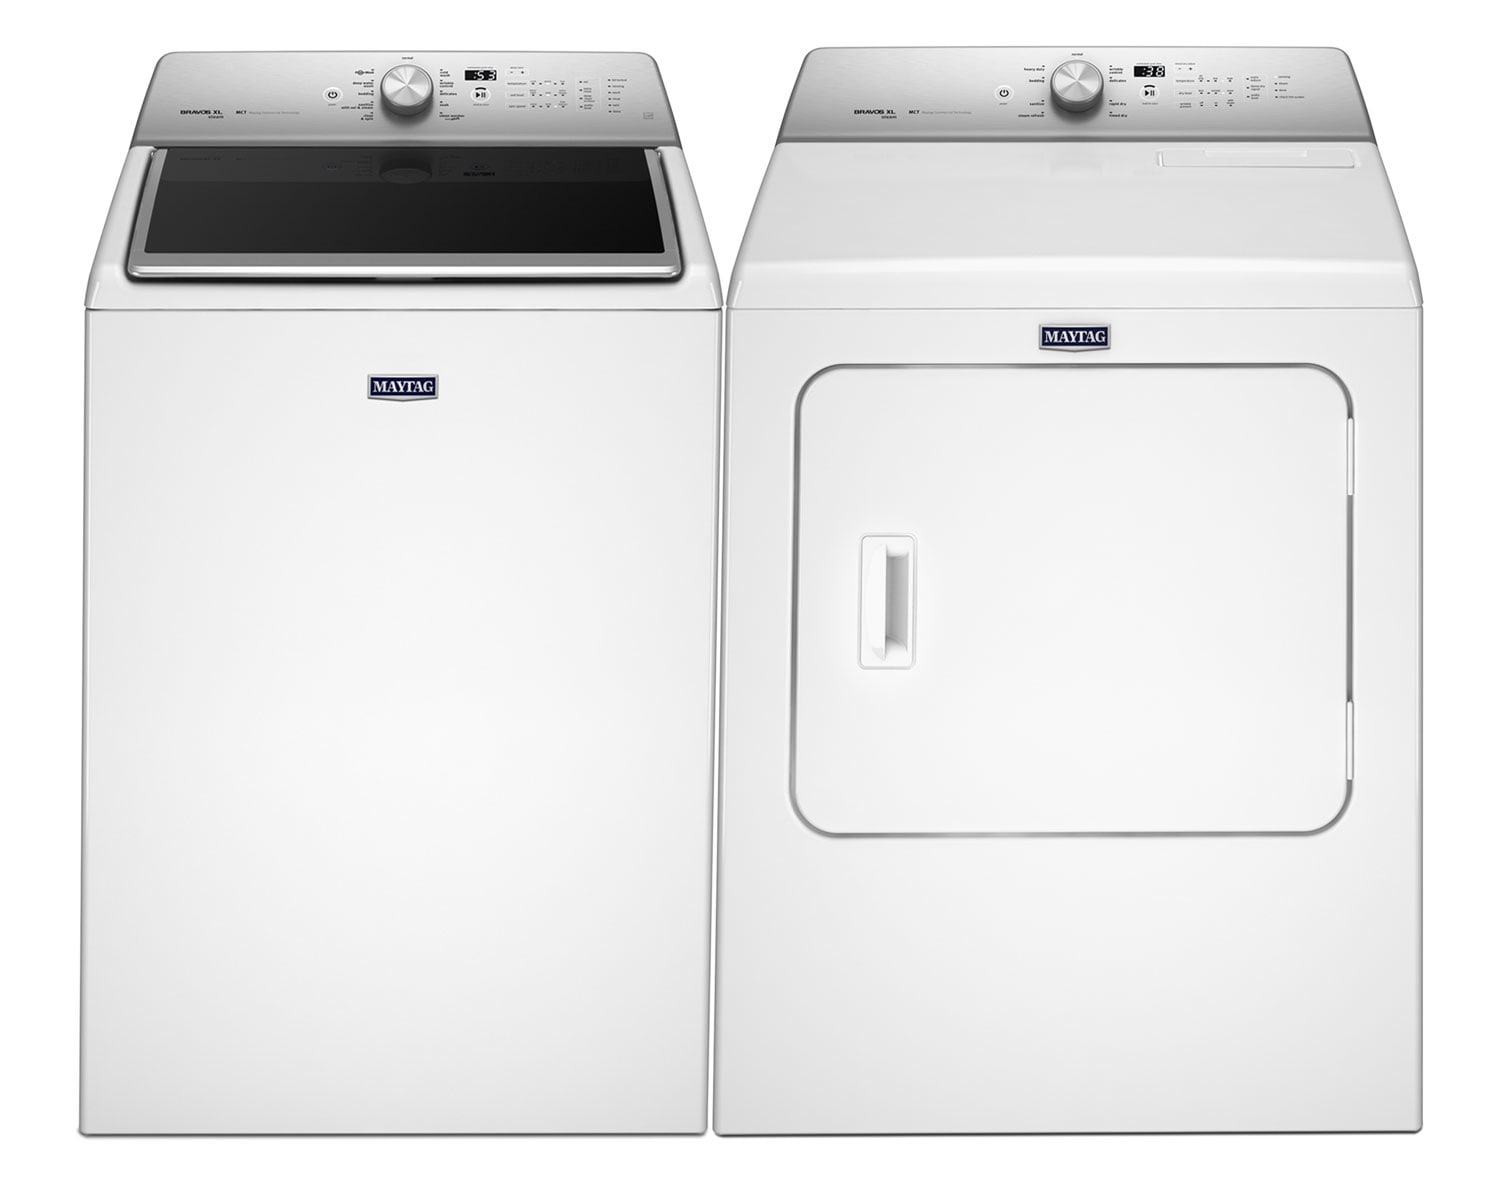 Washers and Dryers - Maytag® 6.1 Cu. Ft. Top-Load Washing Machine and 7.0 Cu. Ft. Steam Electric Dryer - White